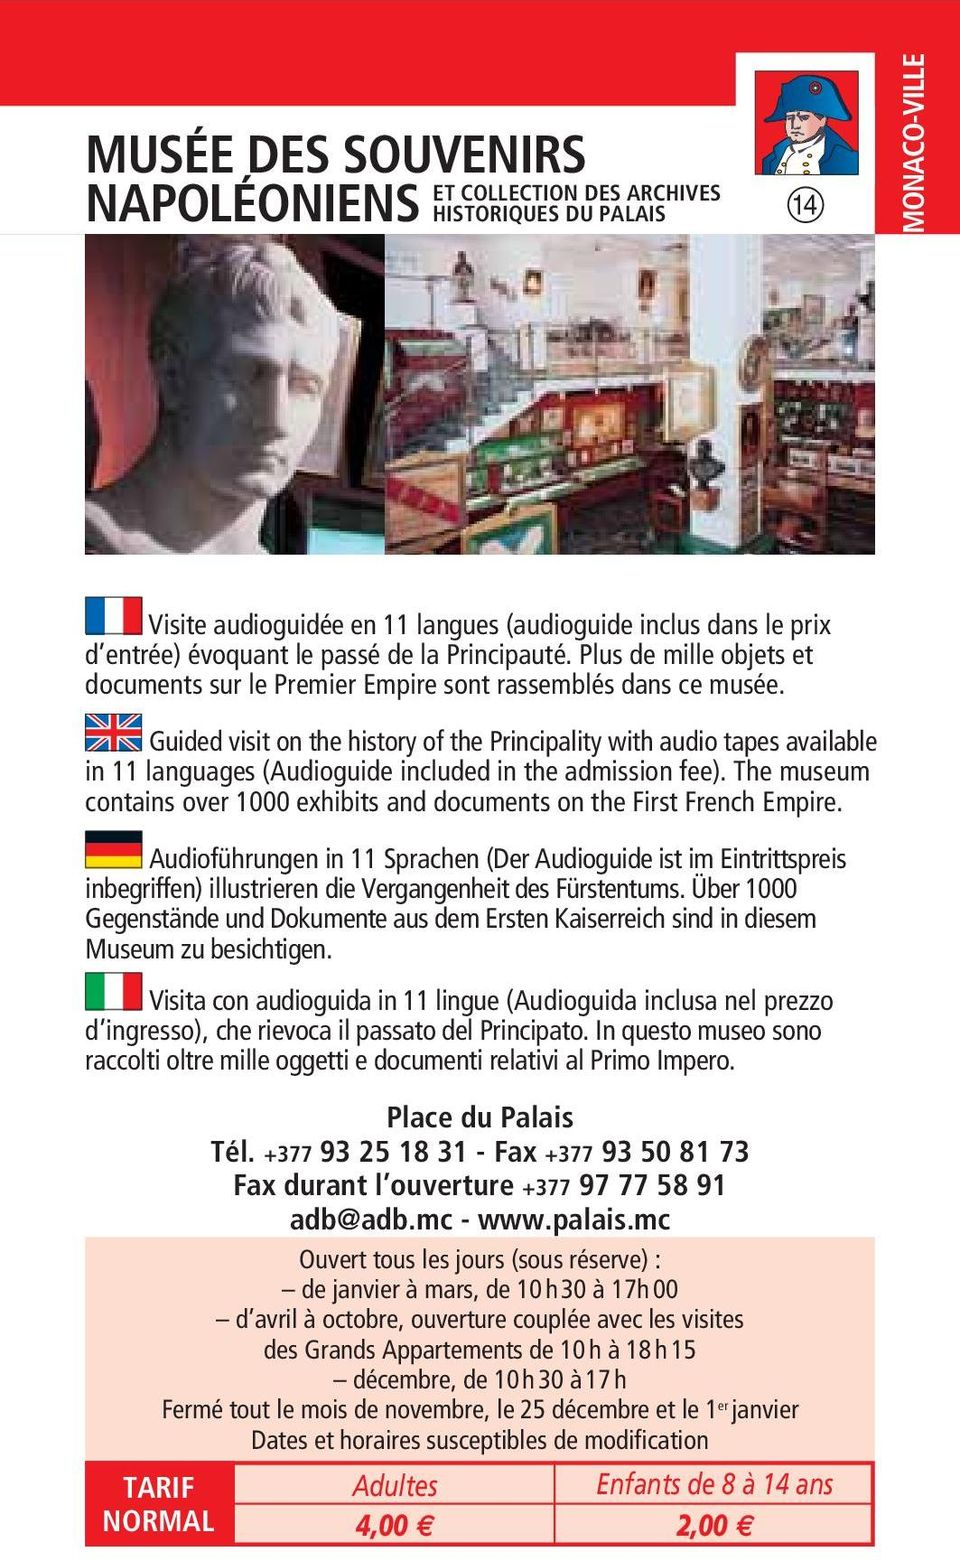 Guided visit on the history of the Principality with audio tapes available in 11 languages (Audioguide included in the admission fee).